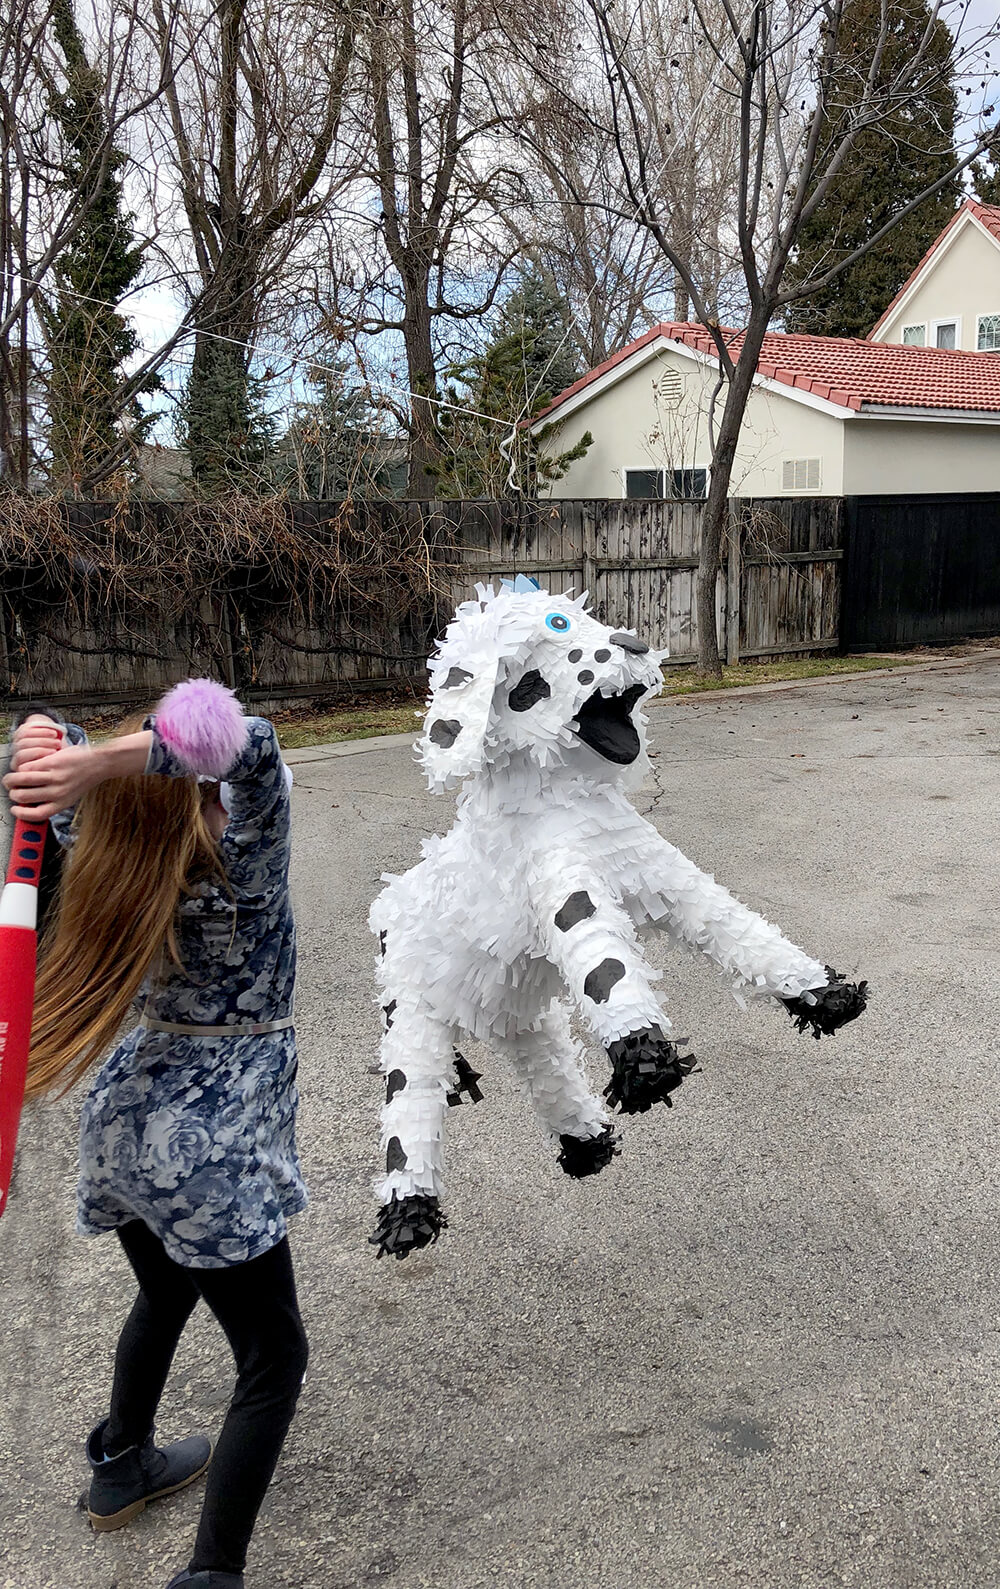 Dalmatian piñata Puppy party activity ideas for kids